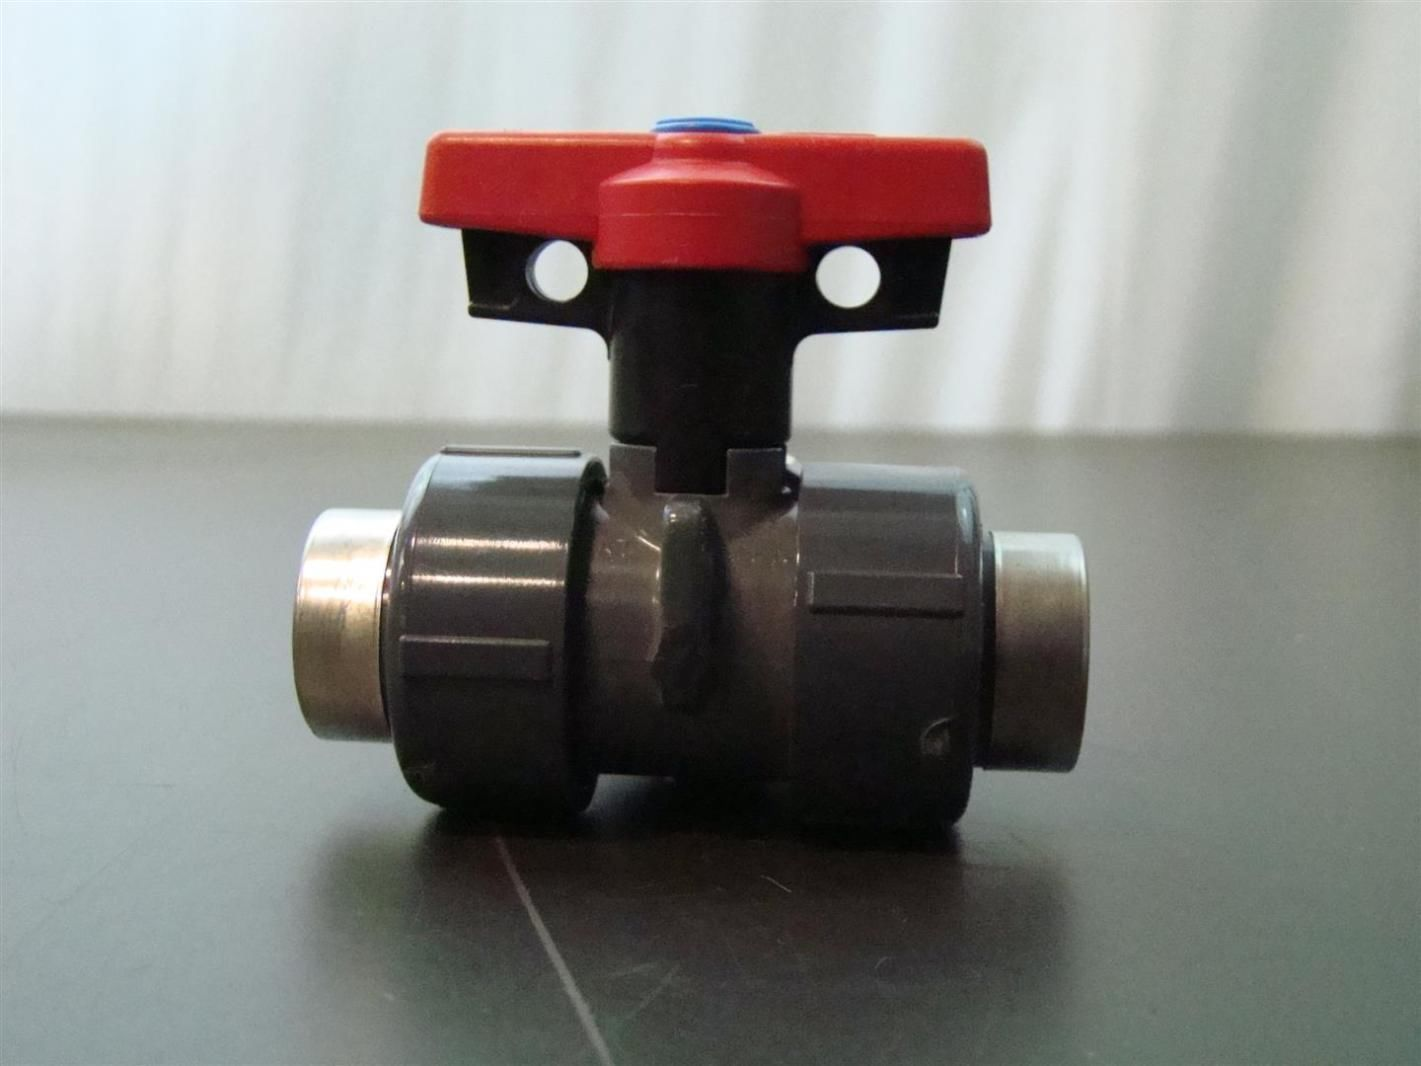 4 way ball valve 2003 chevy tahoe stereo wiring diagram spears 3 pvc 1 2 quot 236psi water 73degf nsf